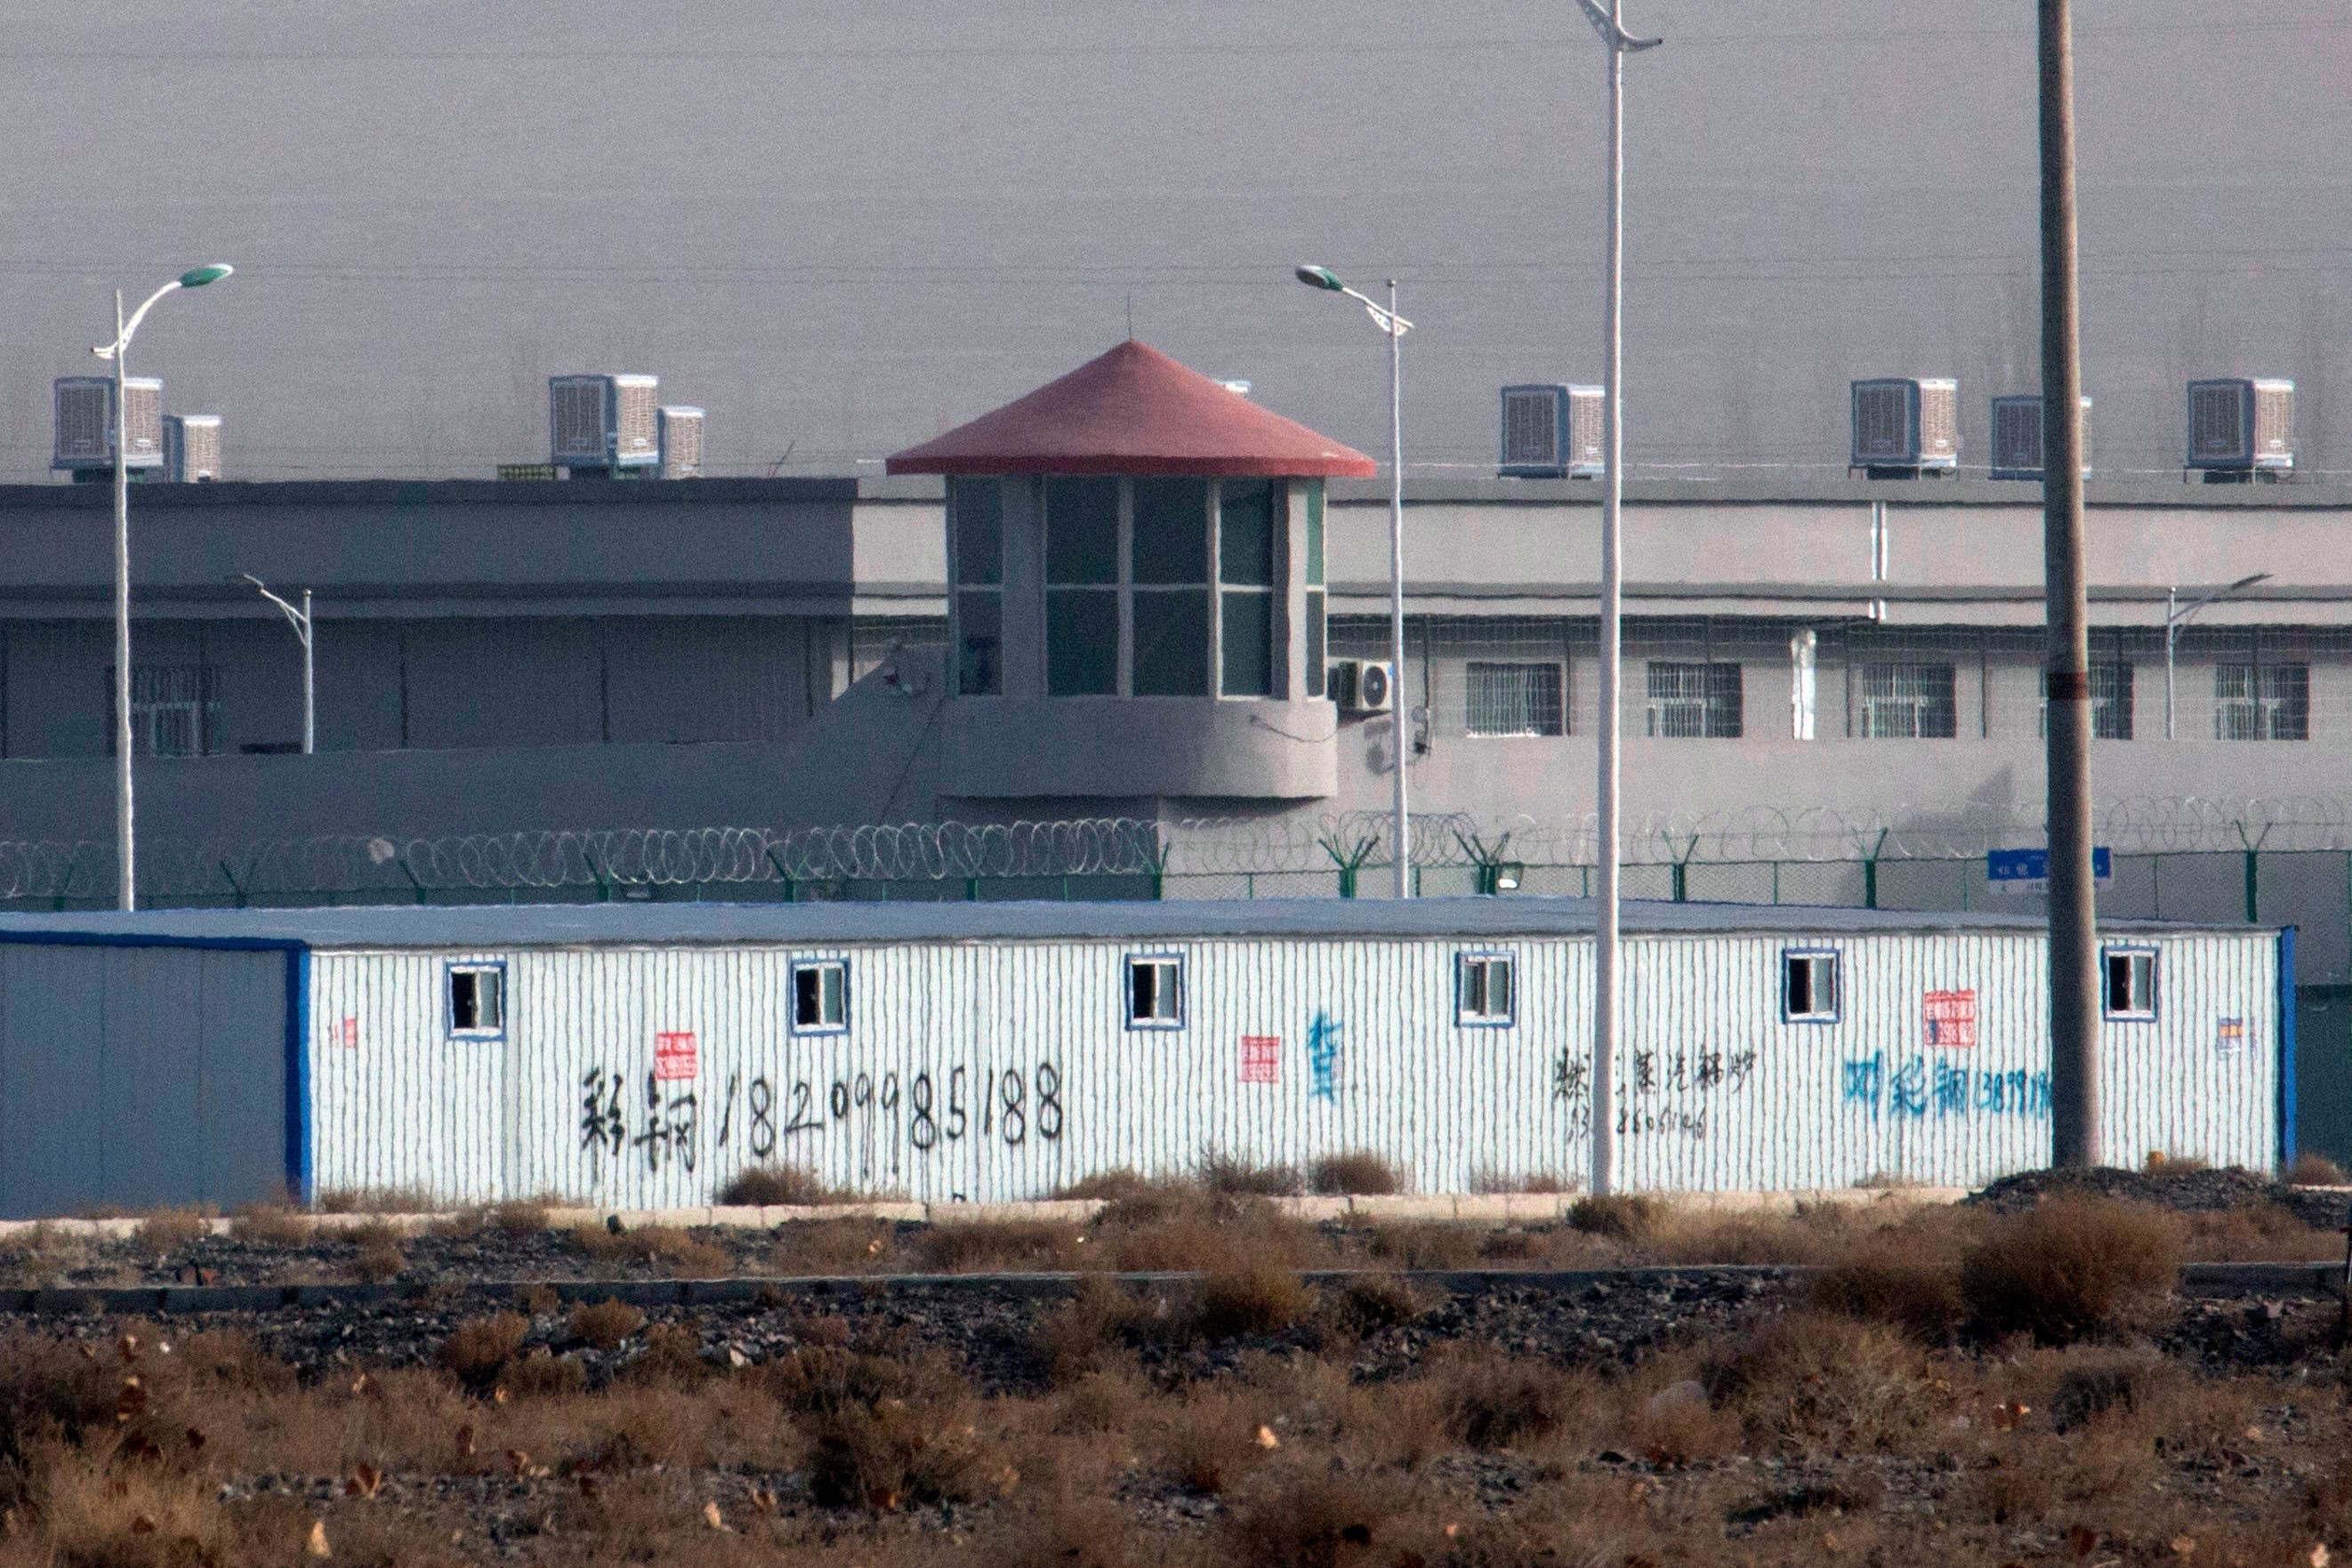 UN Chief Should Support Remote Investigation in Xinjiang